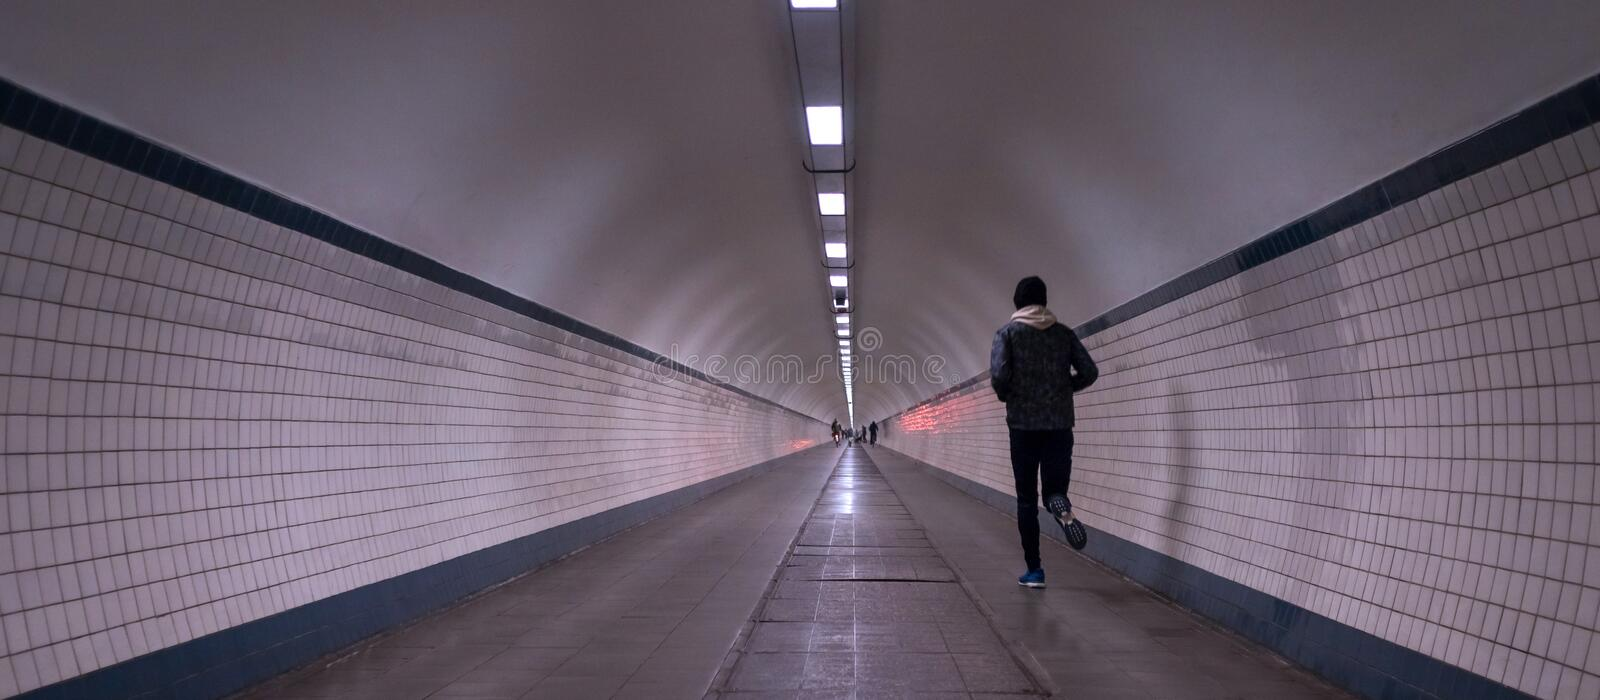 Men running in an tunnel royalty free stock photos